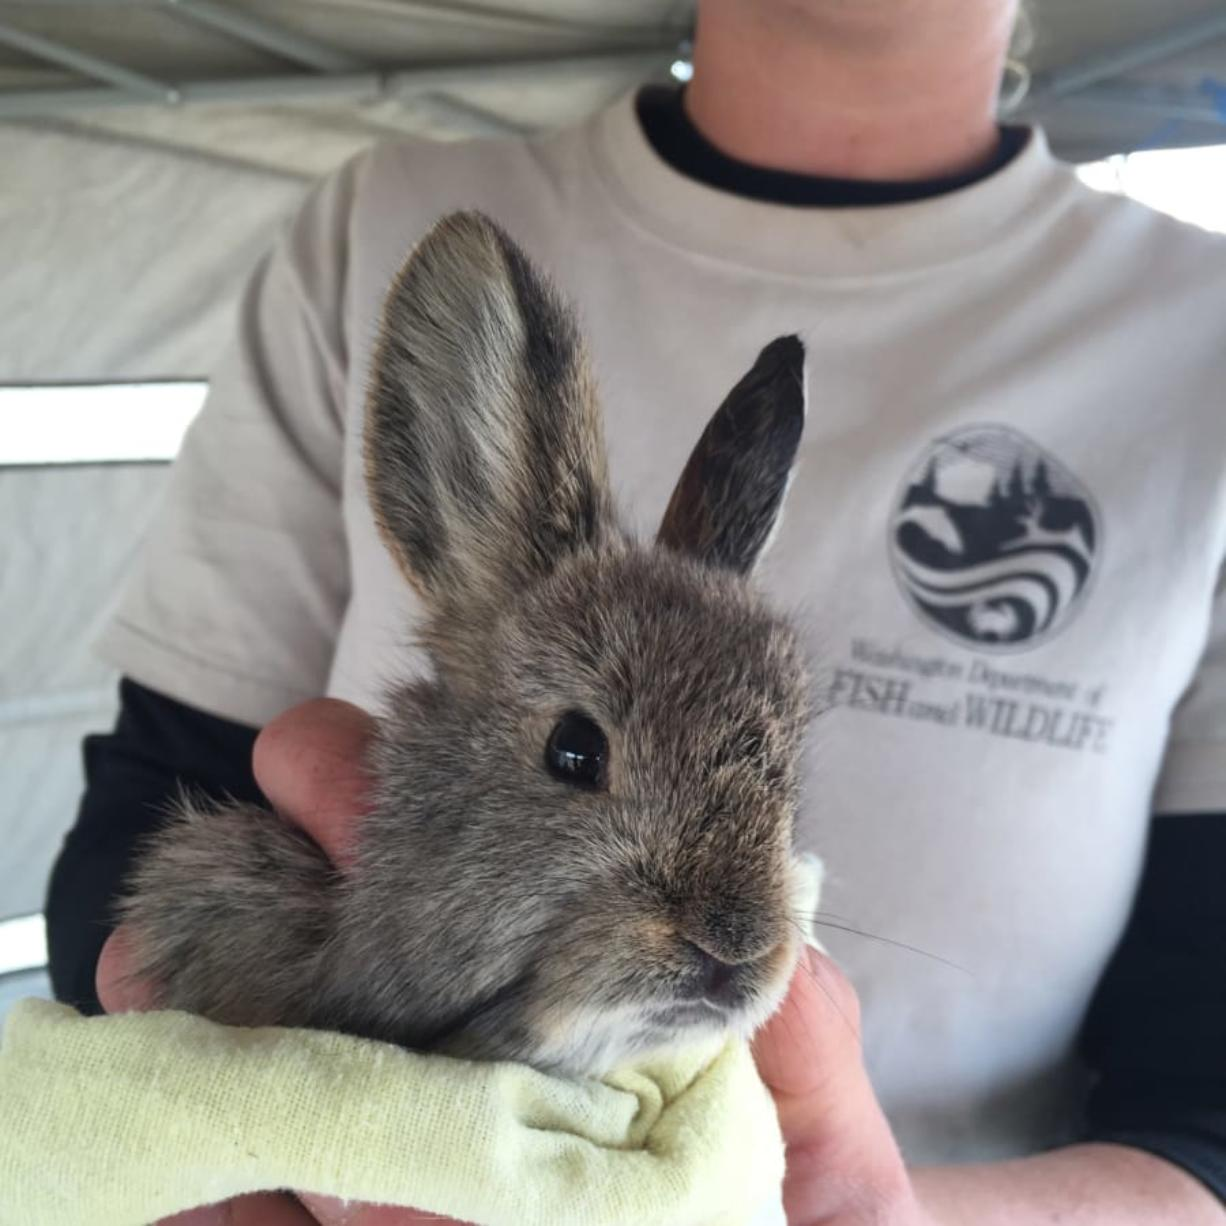 Washington Department of Fish and Wildlife technician Claire Satterwhite holds a pygmy rabbit in October 2015. Recovery of the endangered pygmy rabbit has been set back after fires burned shrub-steppe habitat the animal needs to survive. (Ann Froschauer/U.S.